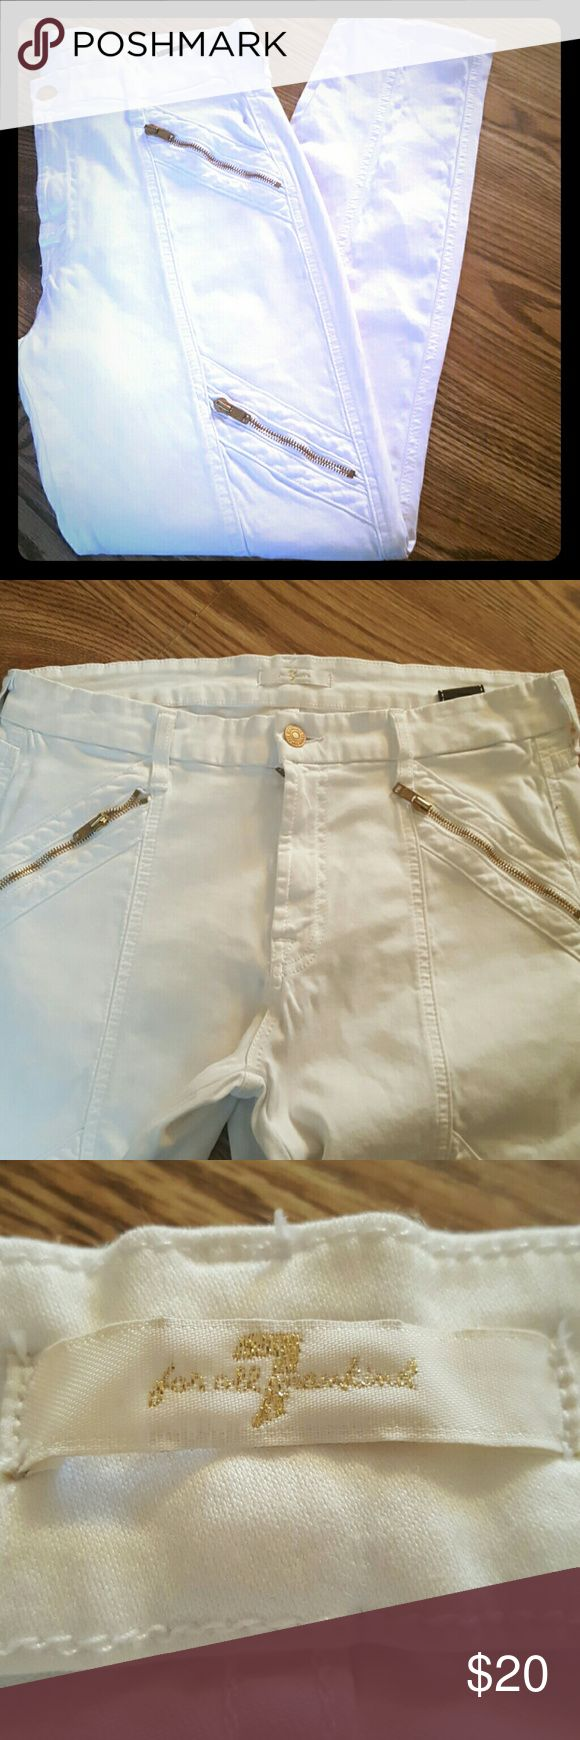 7 for all Mankind women skinny pants new never worn. white skinny stretch pants from 7 for all Mankind. gold zippers on pockets and pockets on thighs. 7 For All Mankind Pants Skinny